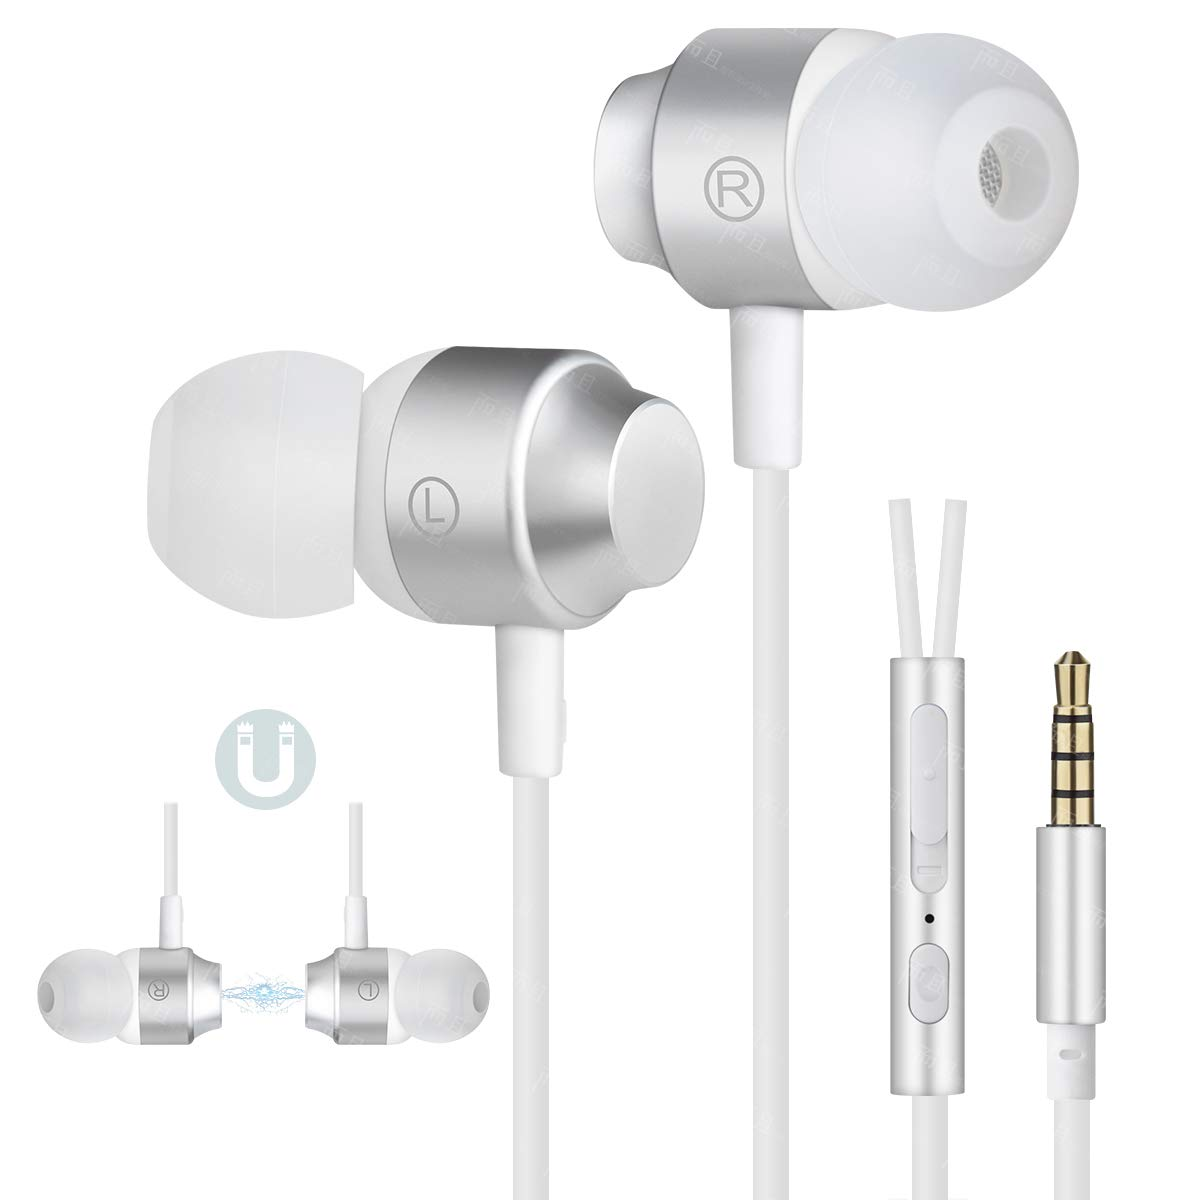 Earbuds Ear Buds Stereo Earphones in-Ear Headphones Earbuds with Microphone Mic and Volume Control Noise Isolating 3.5MM Wired Ear Buds Compatible Android Phone Tablet Laptop